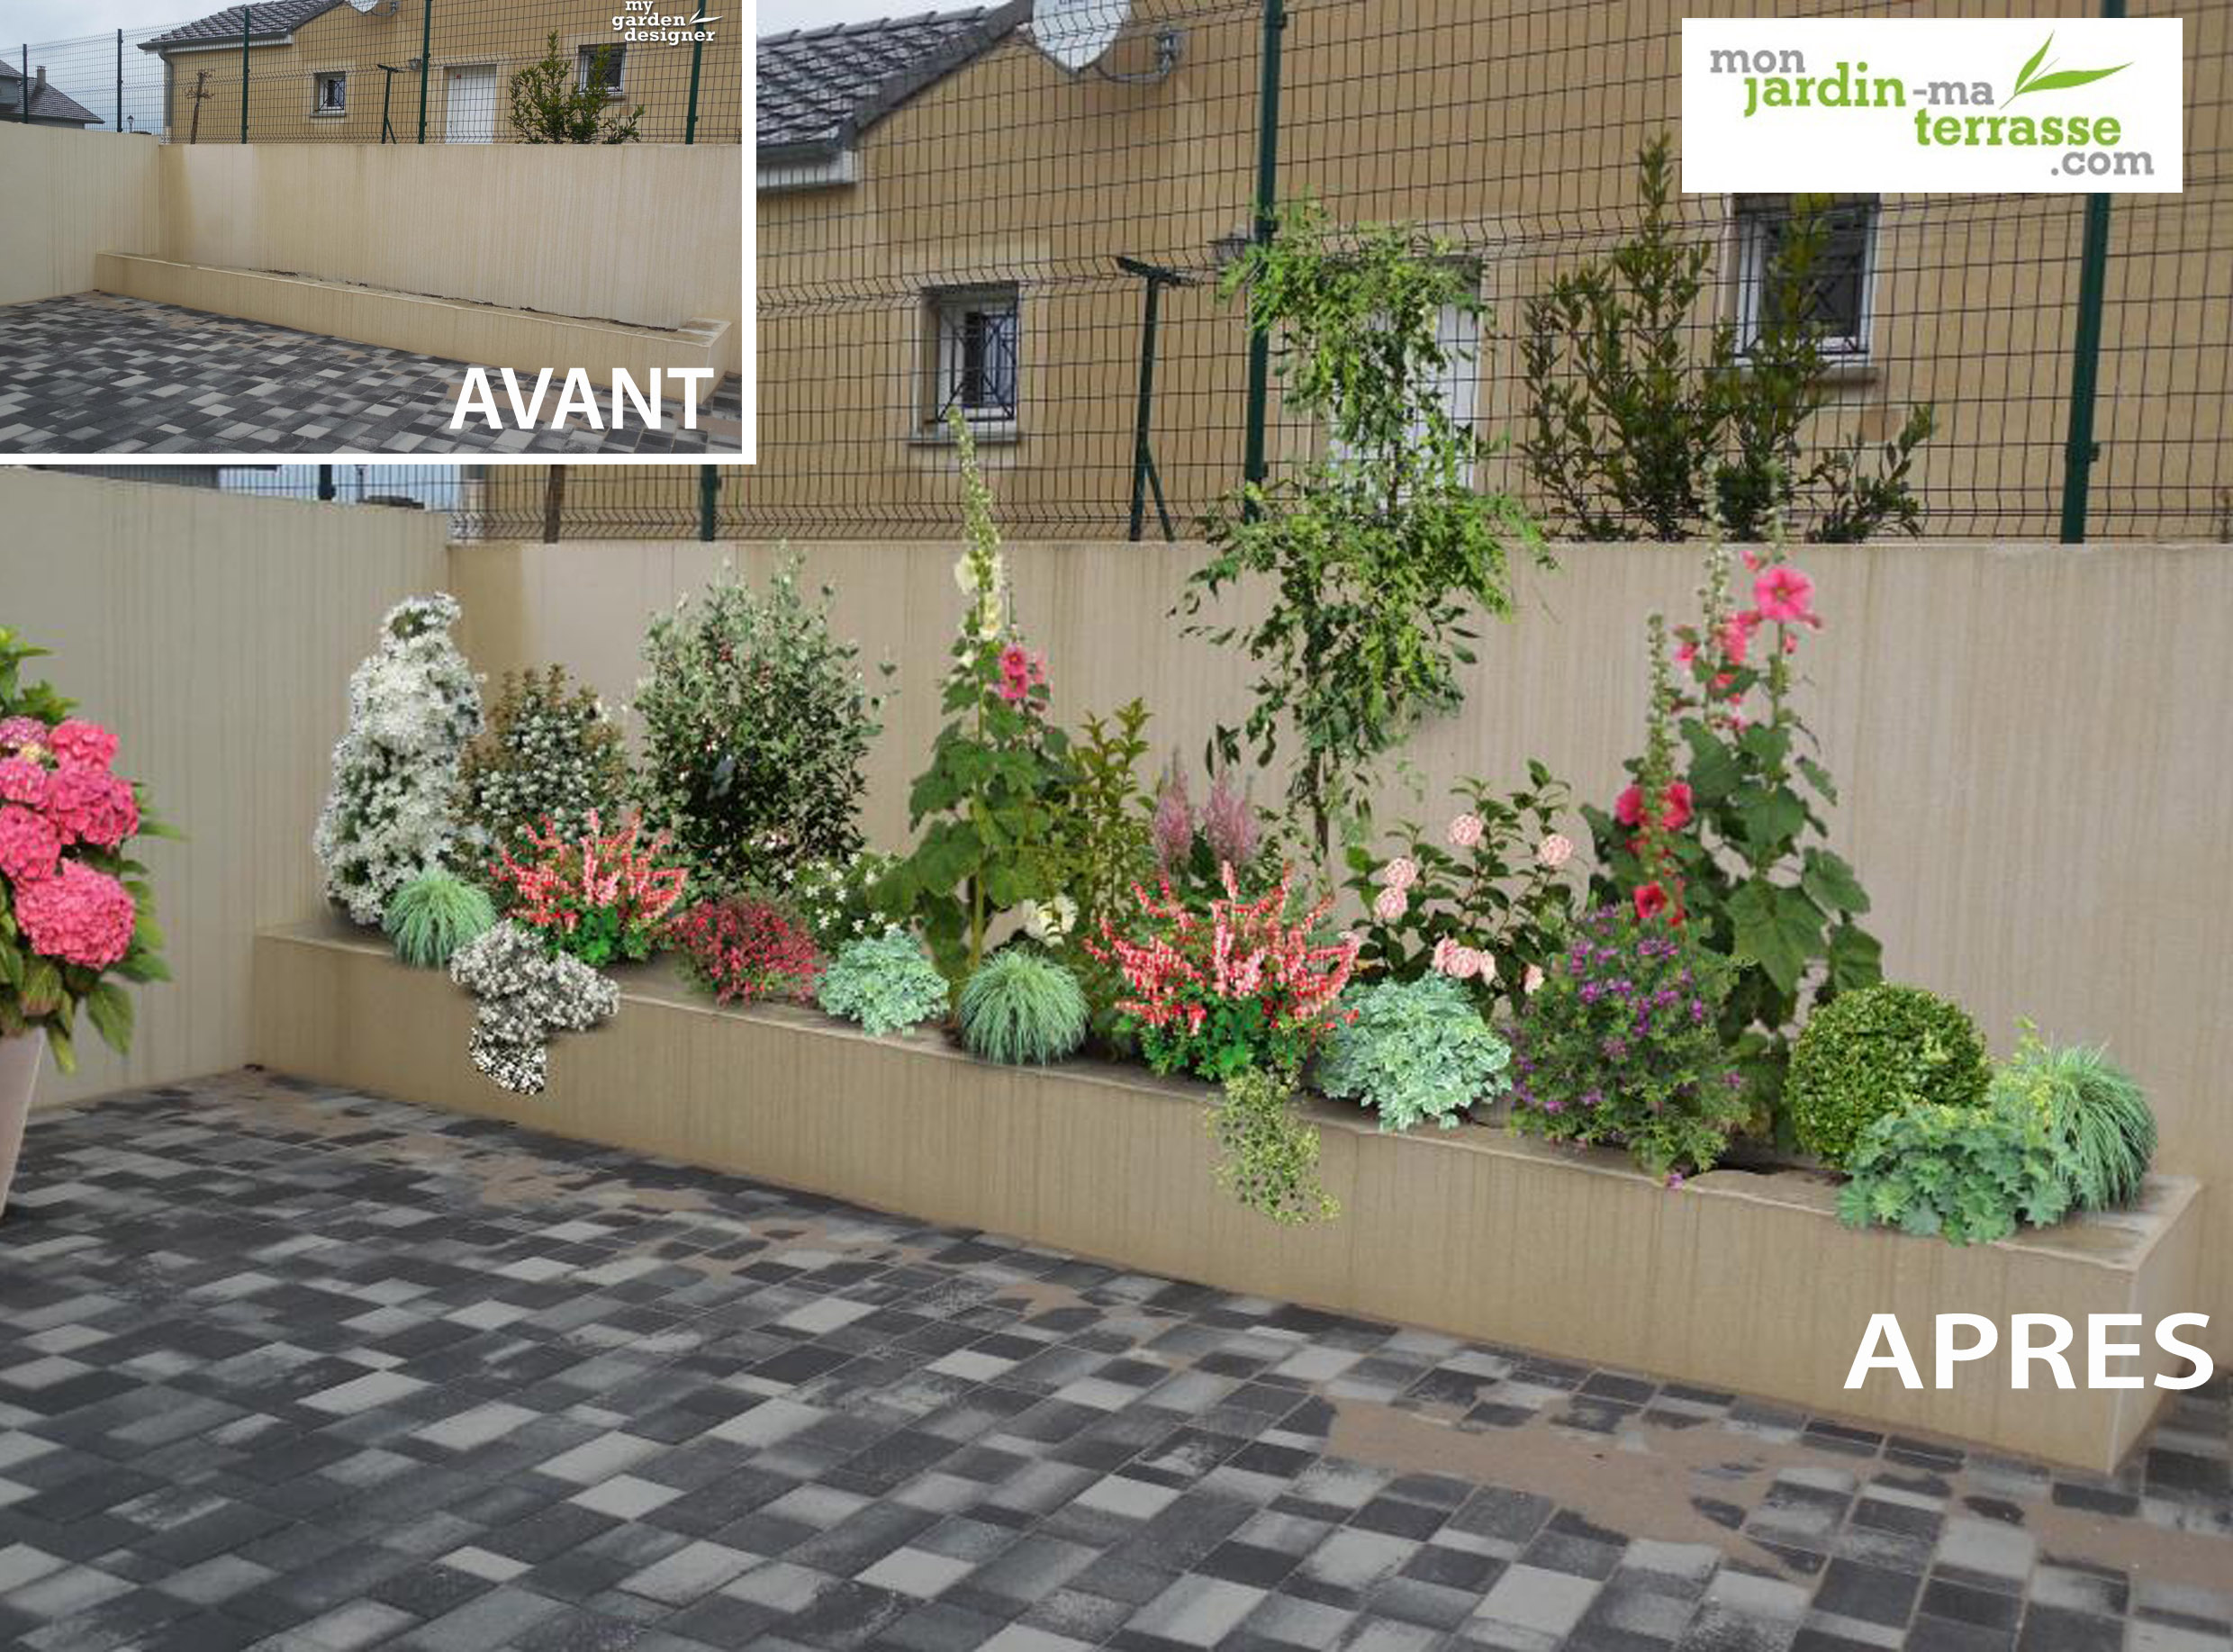 Amenagement jardiniere terrasse monjardin - Amenagement terrasse et jardin photo ...